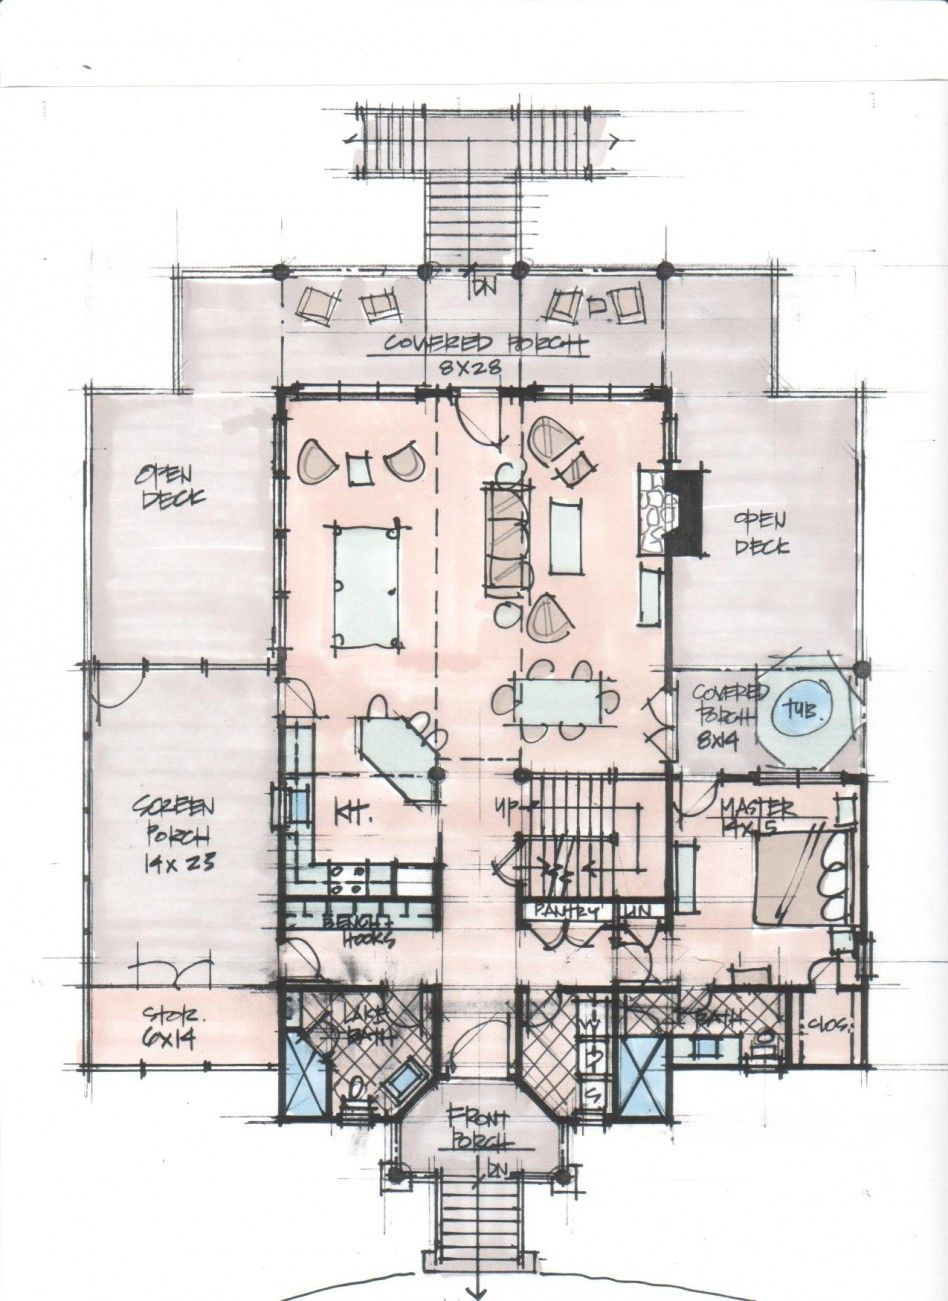 architecture marvelous floor plan design ideas and On house floor sketch